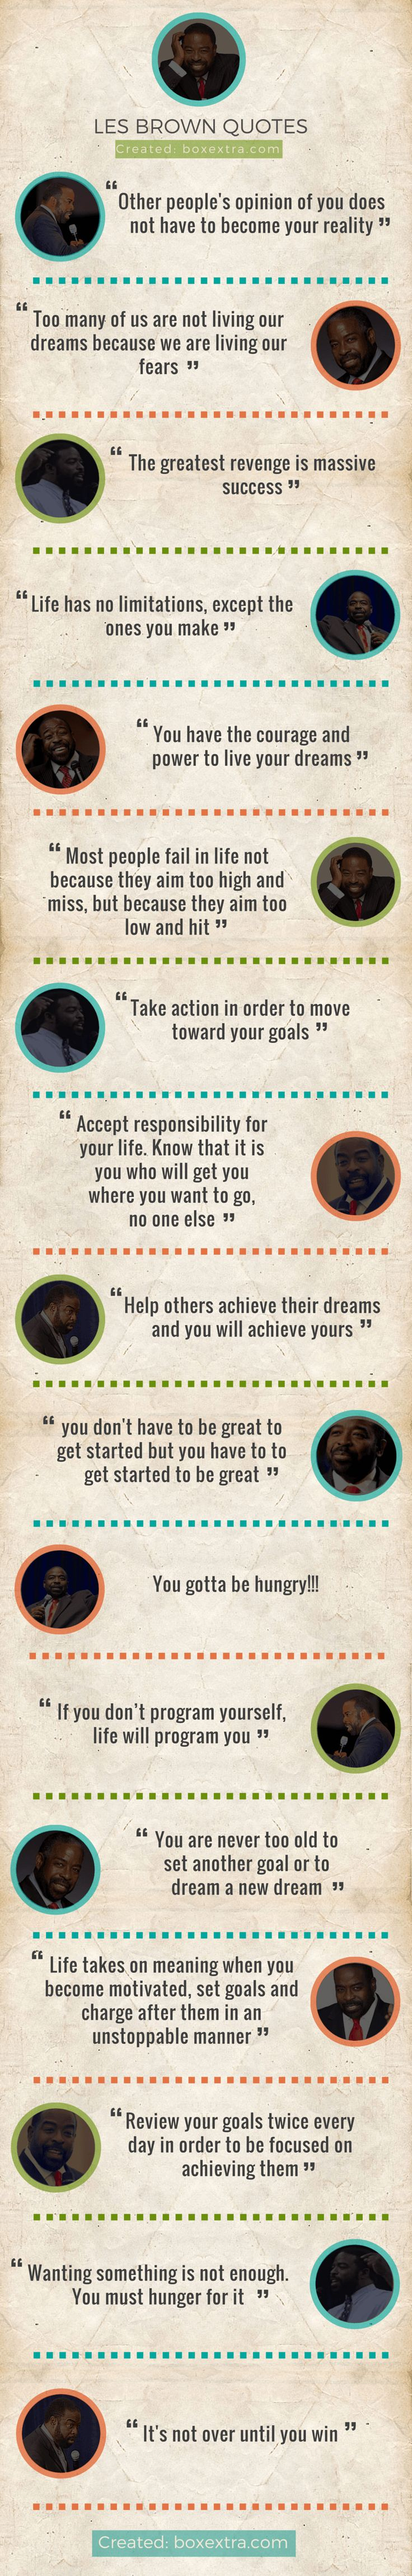 Les brown quotes infographics